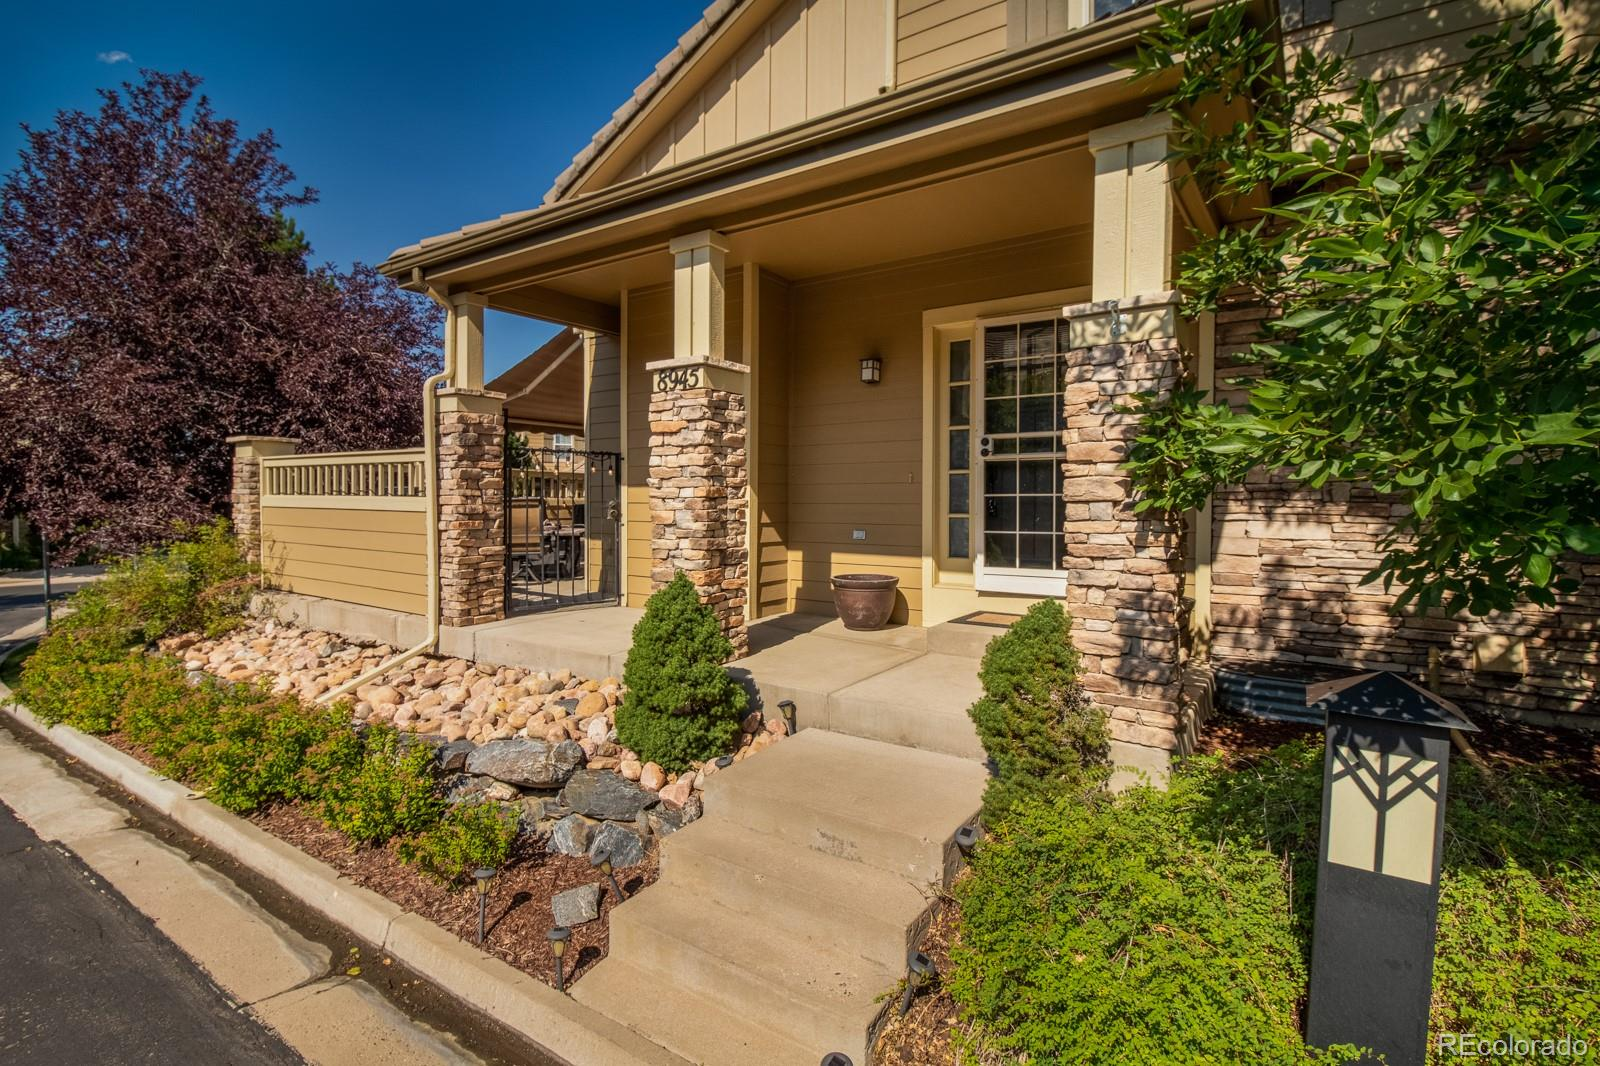 MLS# 7685605 - 4 - 8945 Tappy Toorie Circle, Highlands Ranch, CO 80129